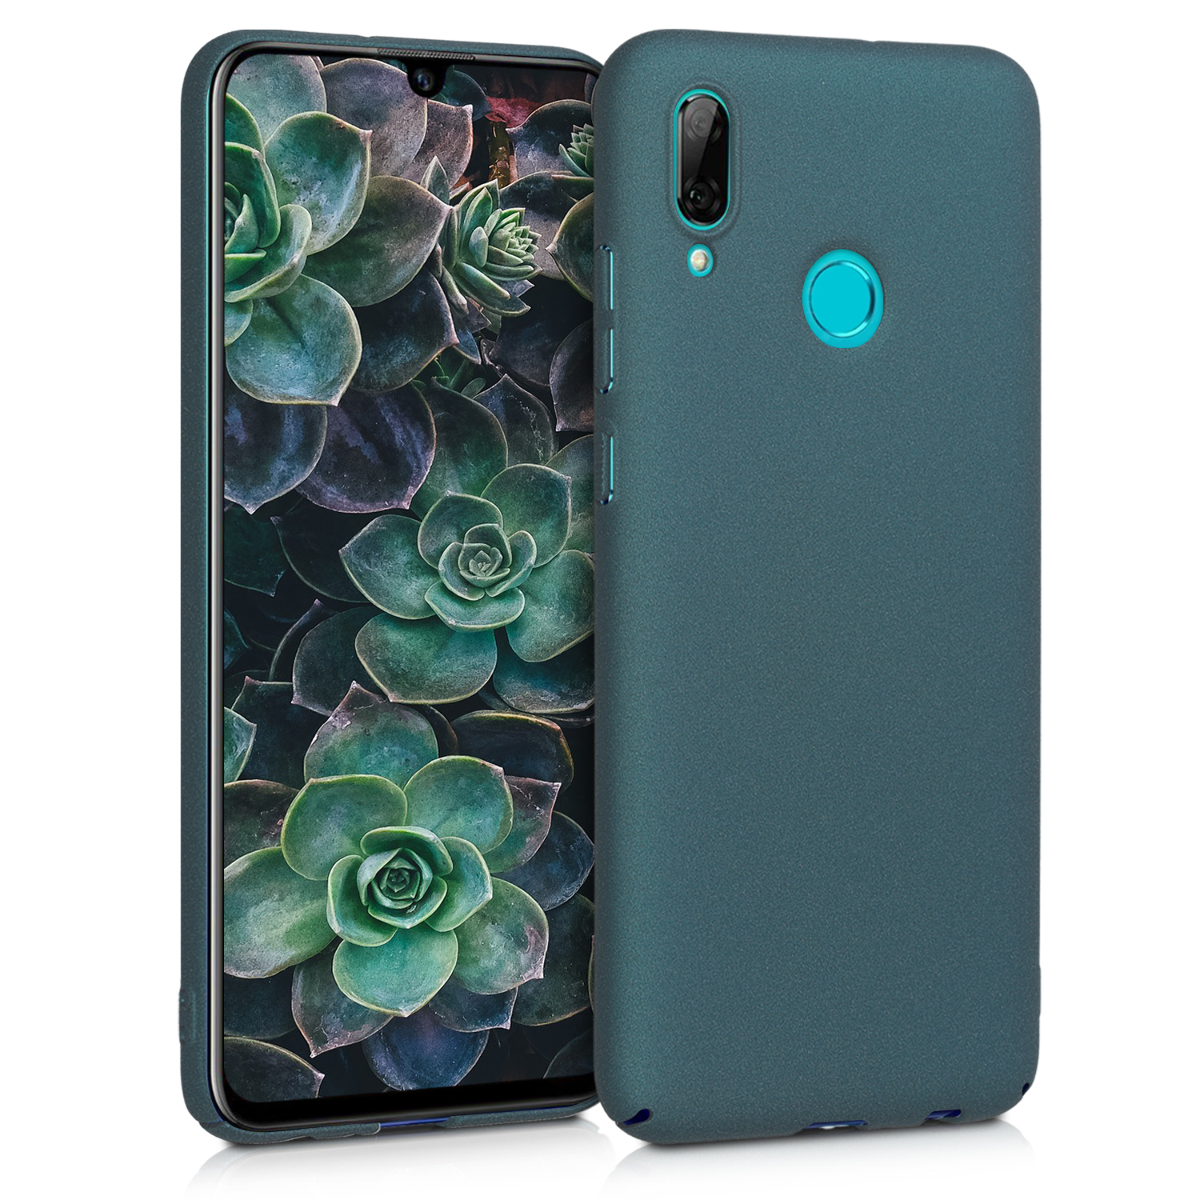 KW Σκληρή Θήκη Huawei P Smart 2019 - Metallic Teal (50029.14)